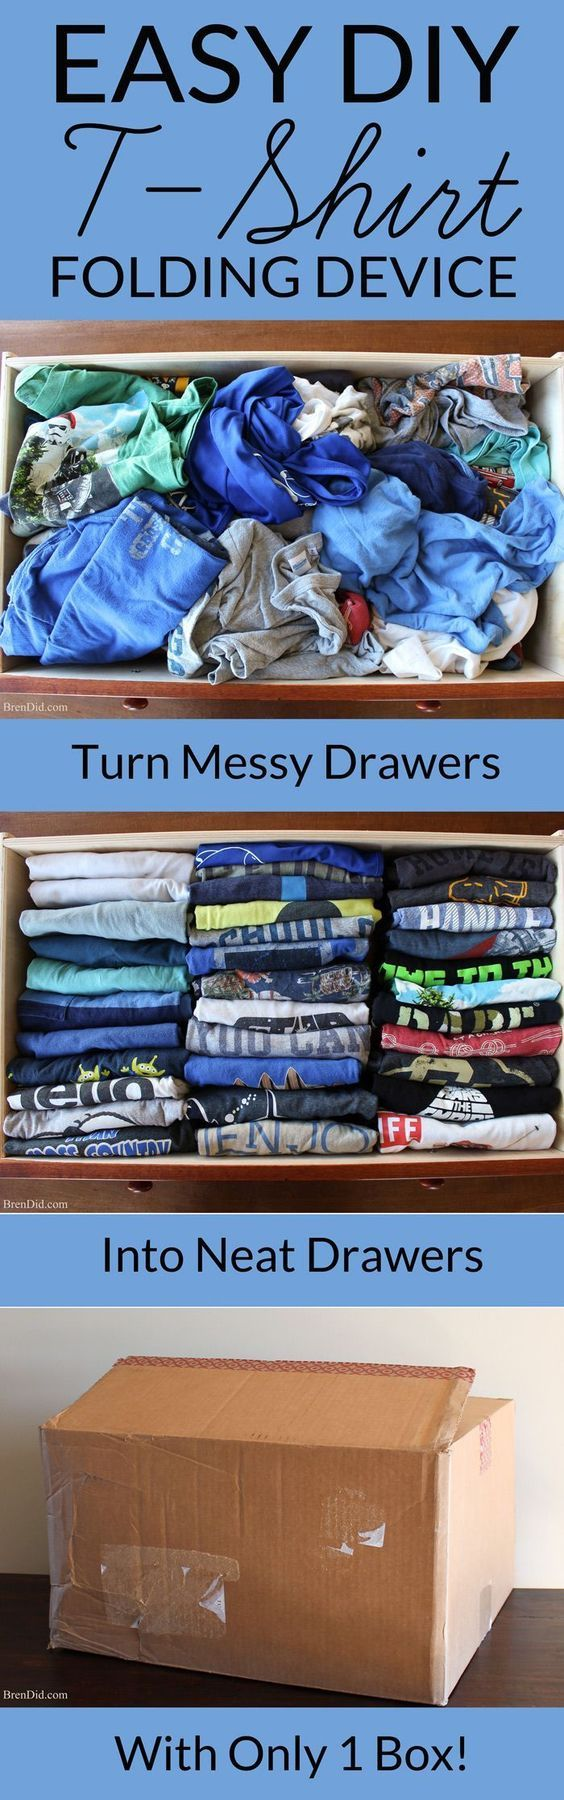 Design your own t shirt lesson plan - 25 Best Ideas About Make Your Own Shirt On Pinterest Party T Shirts Design Own Shirt And Freezer Paper Stenciling